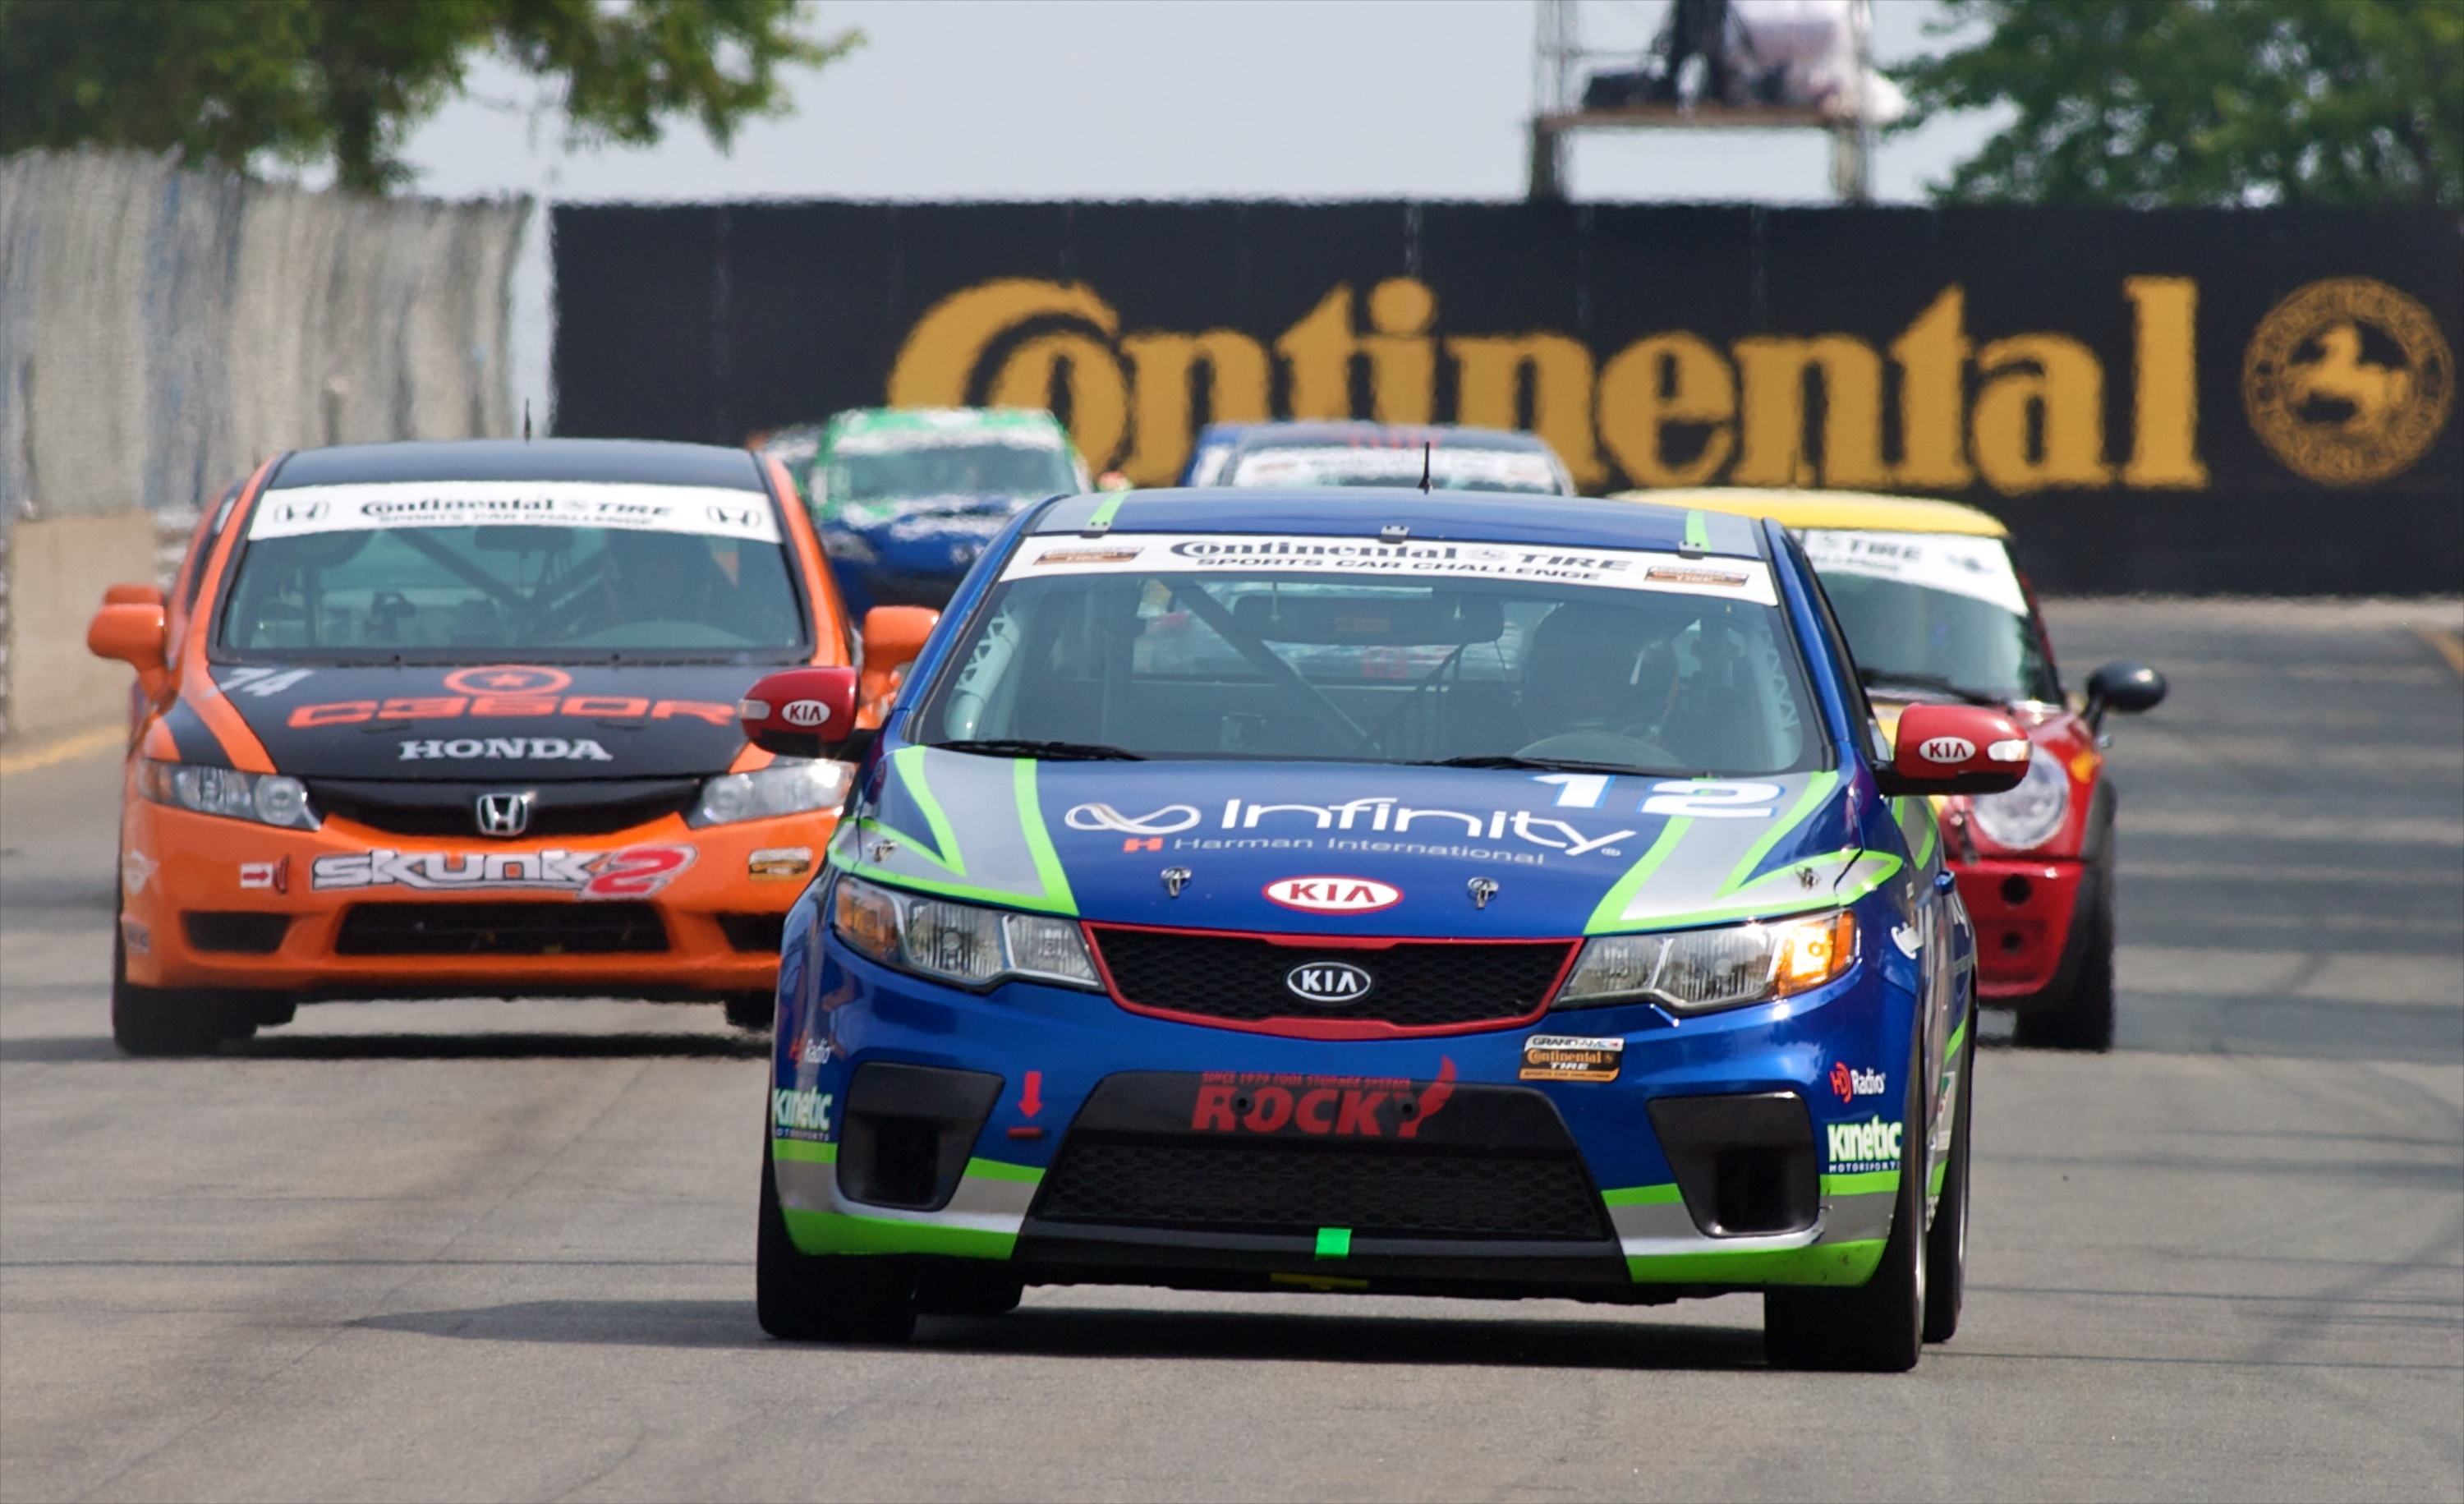 Kia Returning to GRAND-AM for 2011